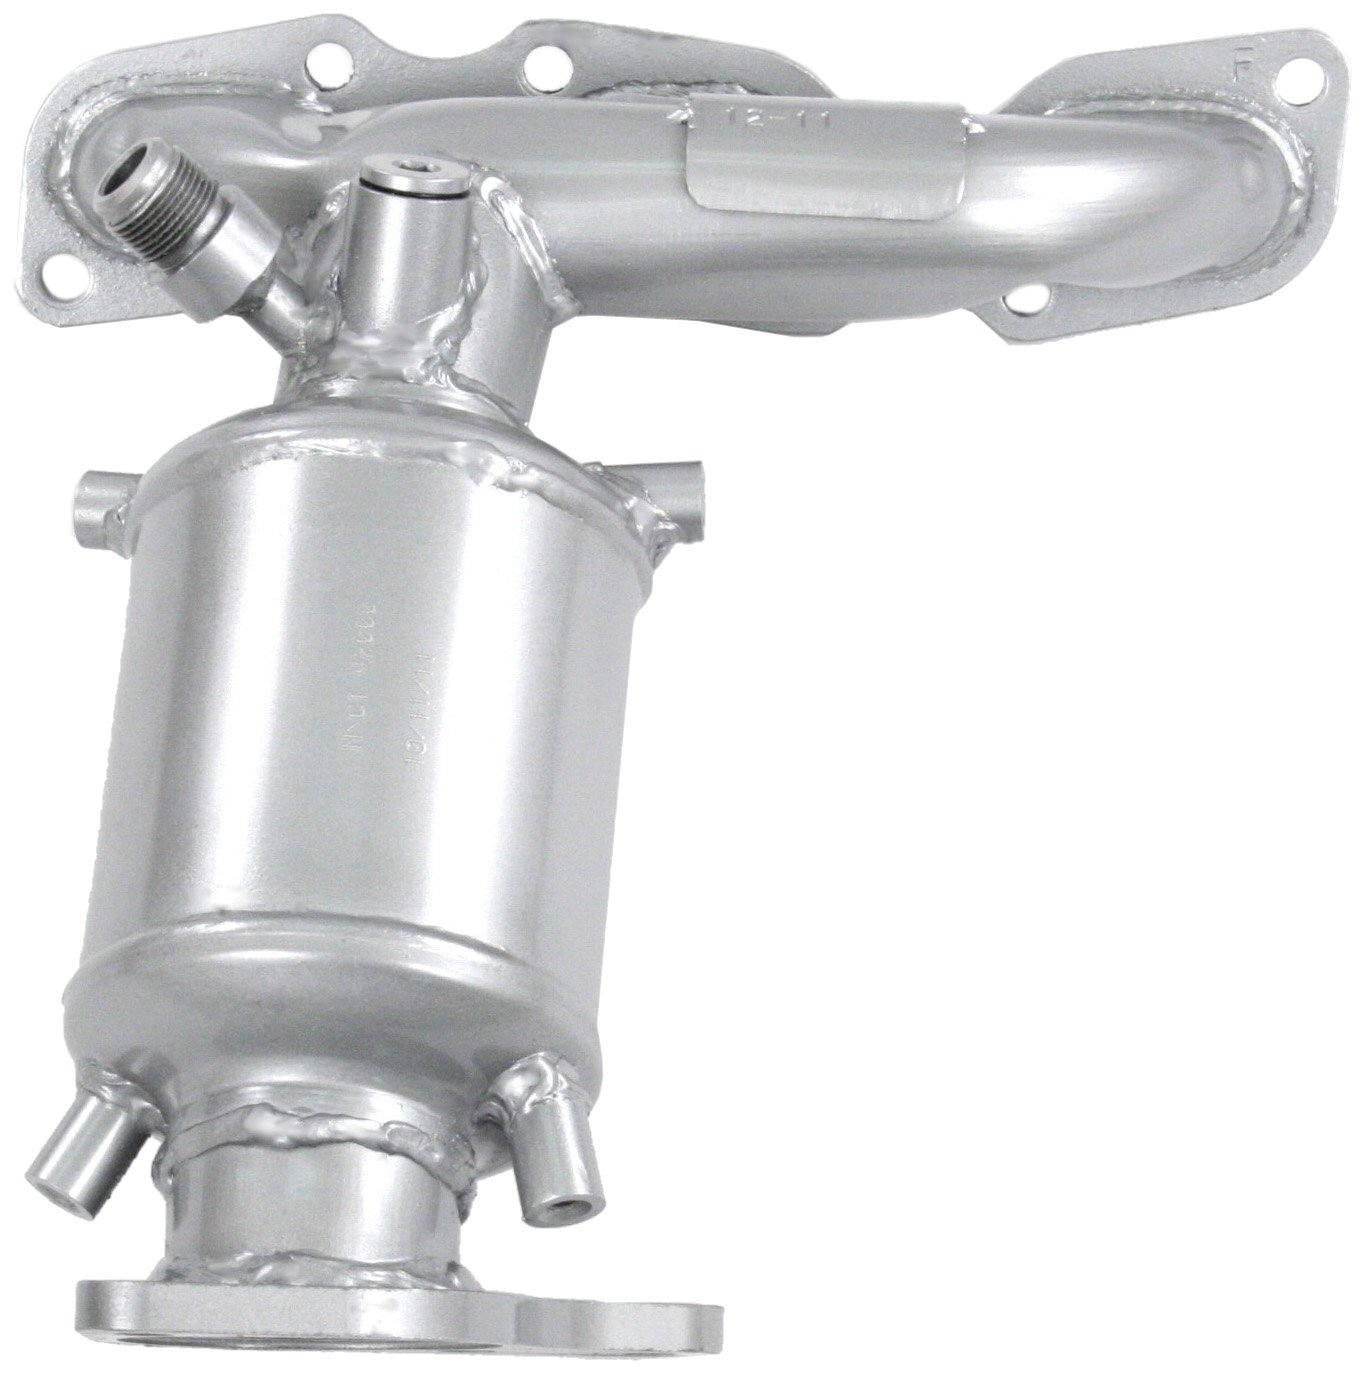 Pacesetter 750158 Direct-Fit Manifold with Catalytic Converter